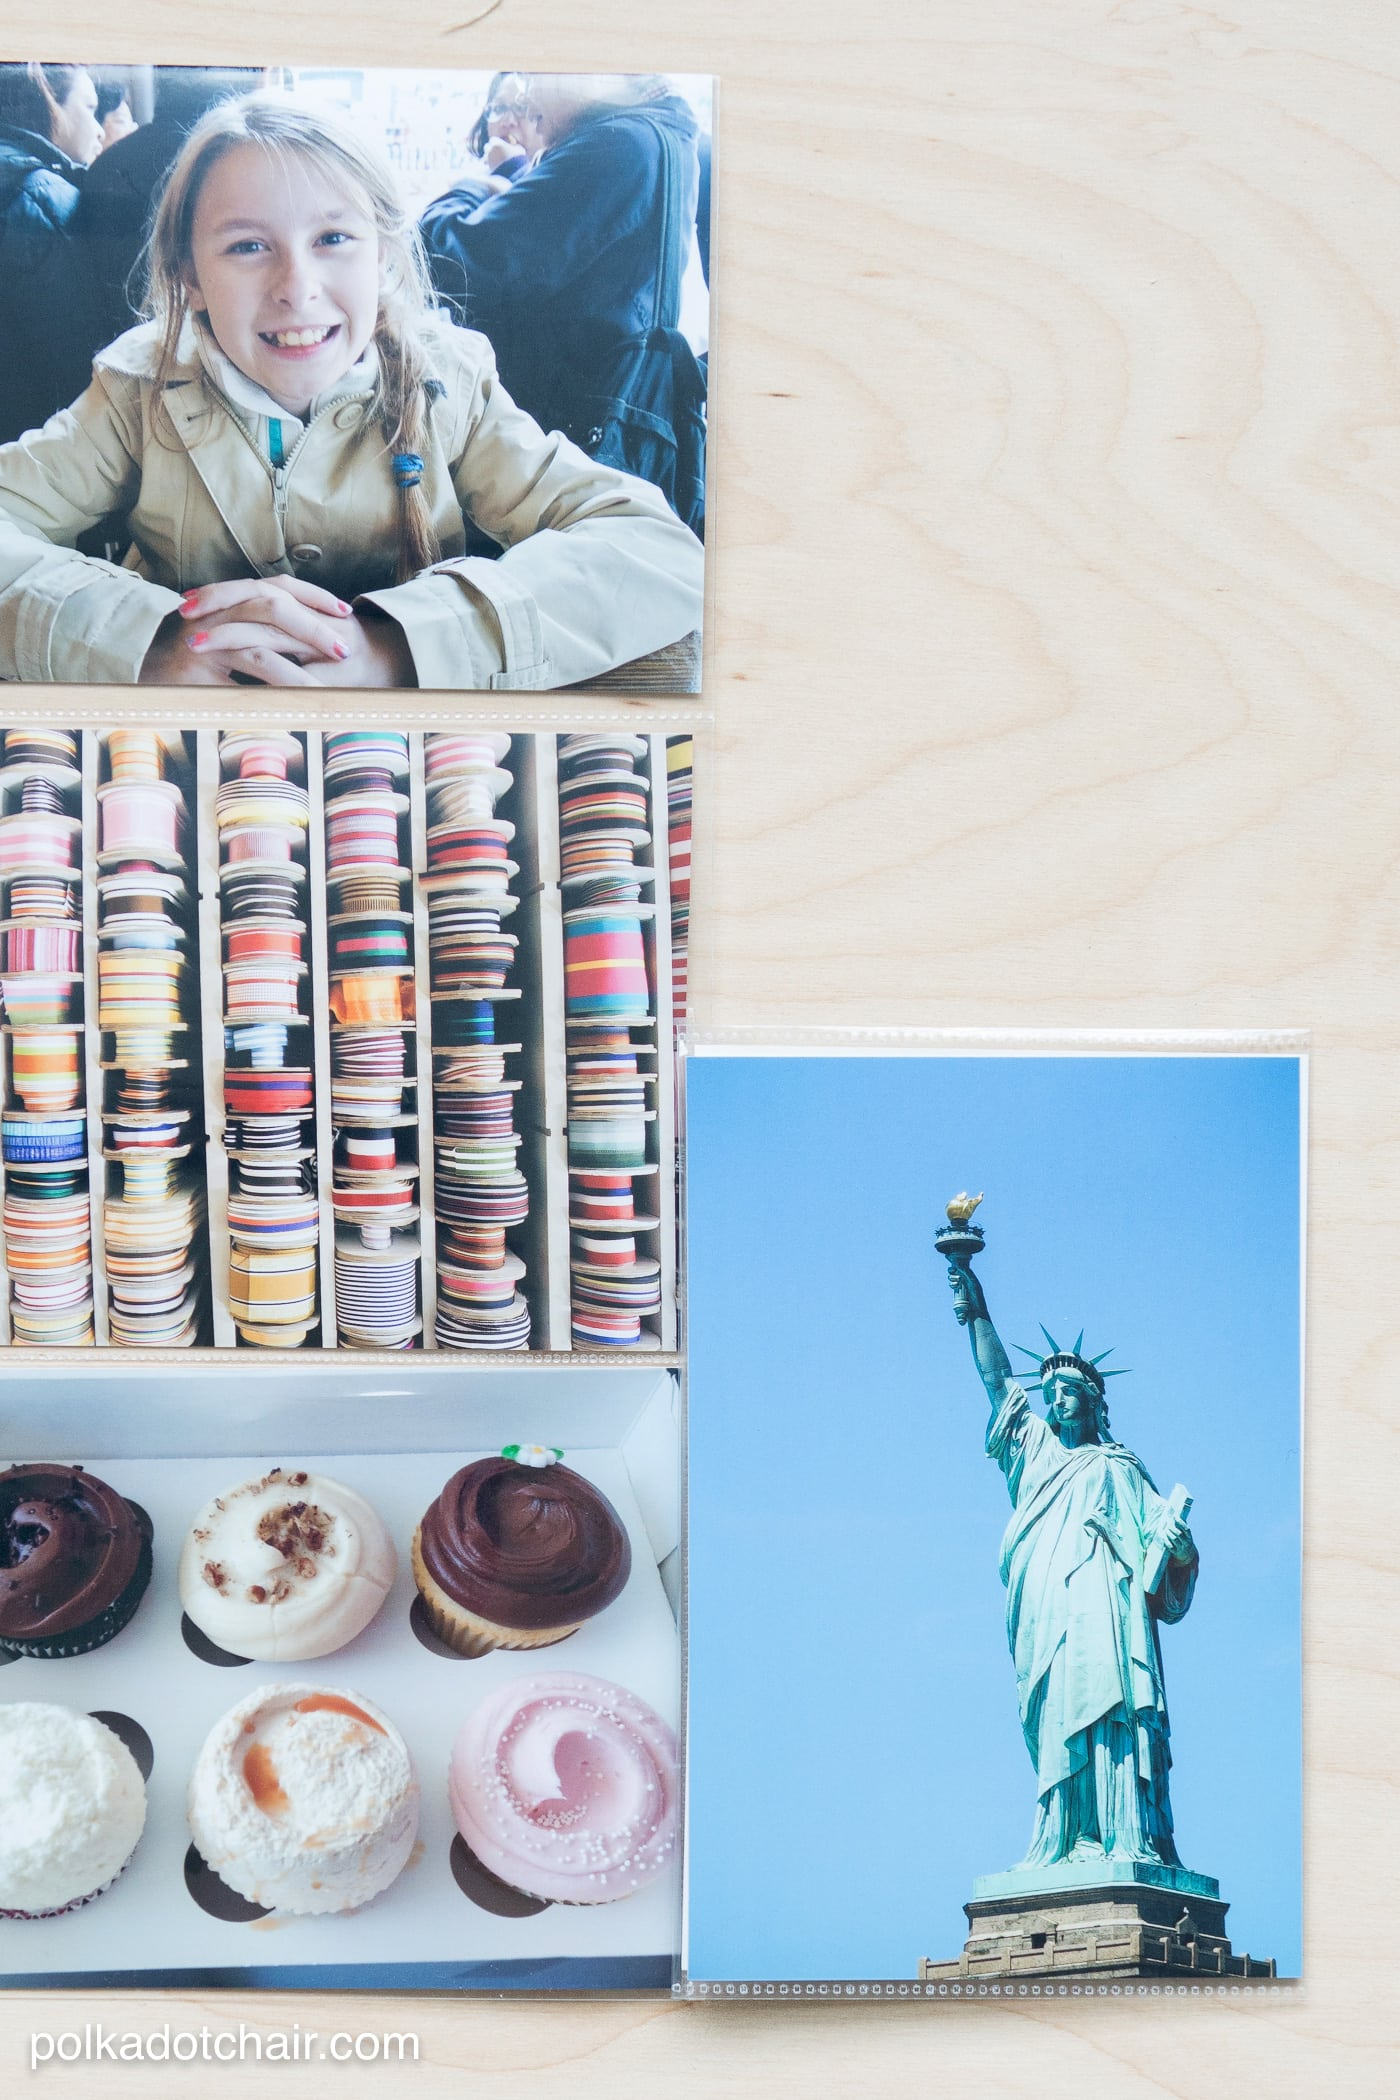 How to create custom photo sleeves for odd shaped memorabilia from vacations or old photos.